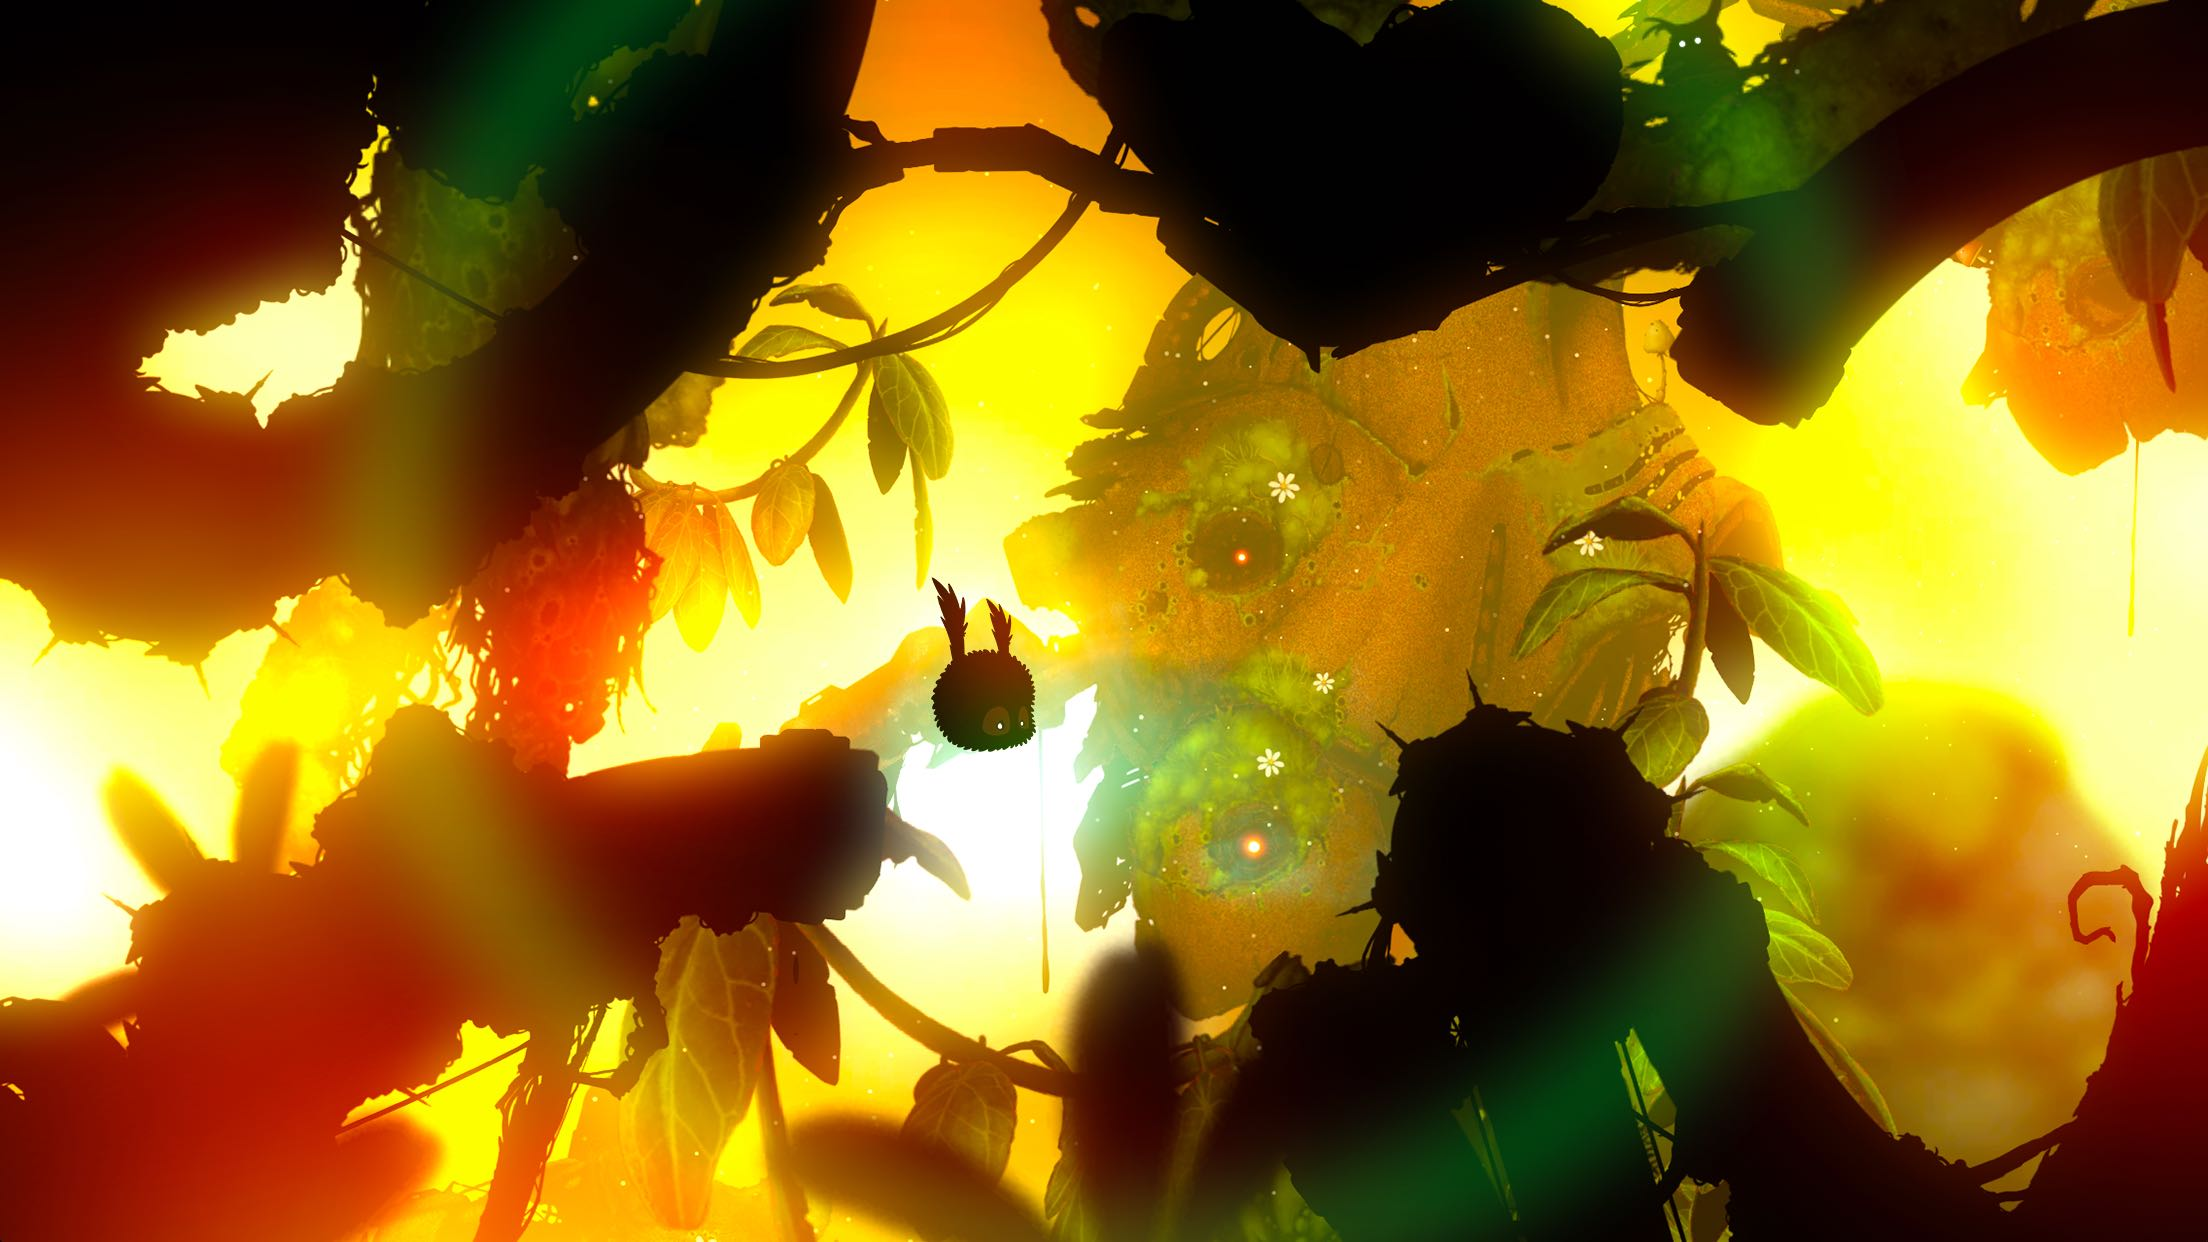 Badland 2 for iOS iPad screenshot 003